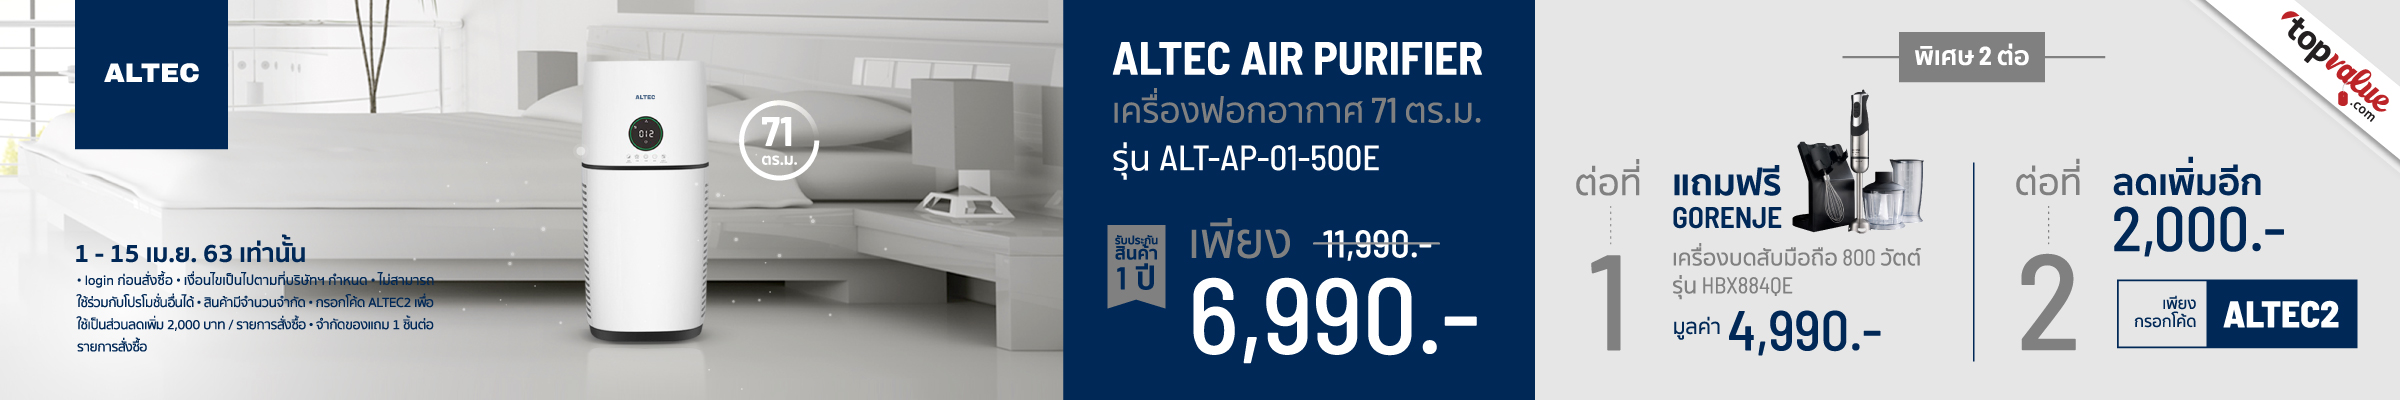 TopValue - ALTEC Air Purifier